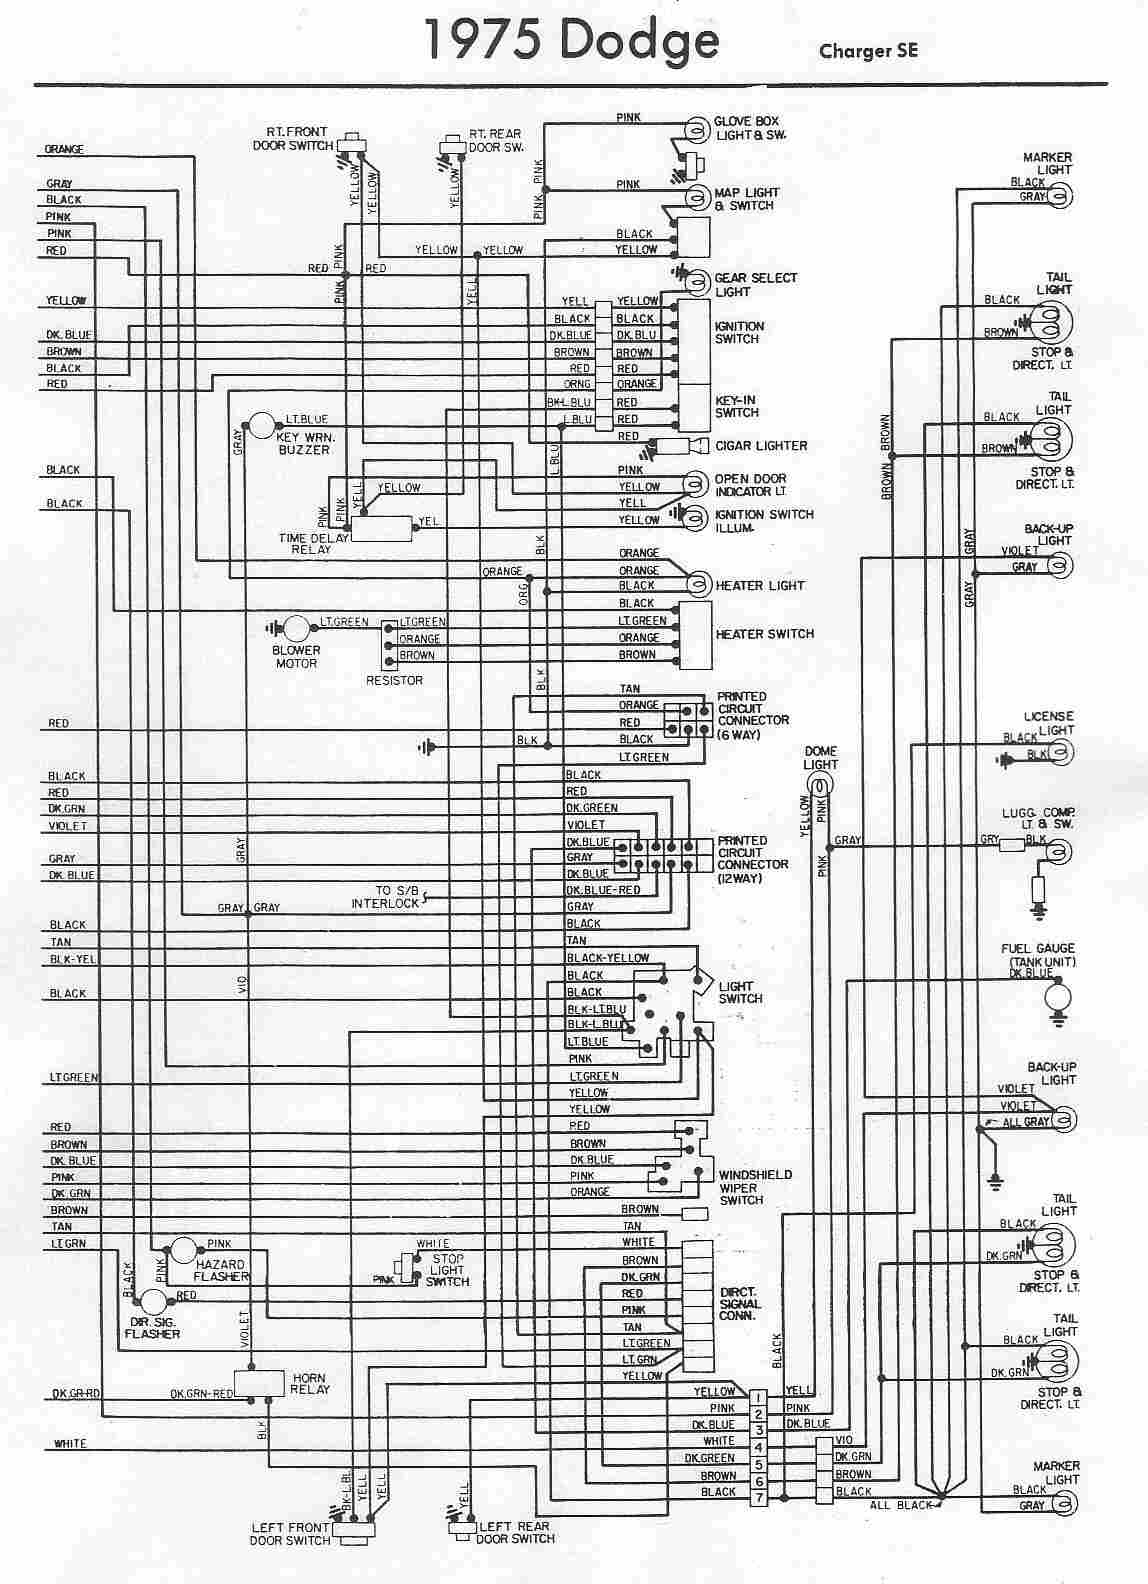 93 dodge pickup electrical diagram  u2022 wiring diagram for free